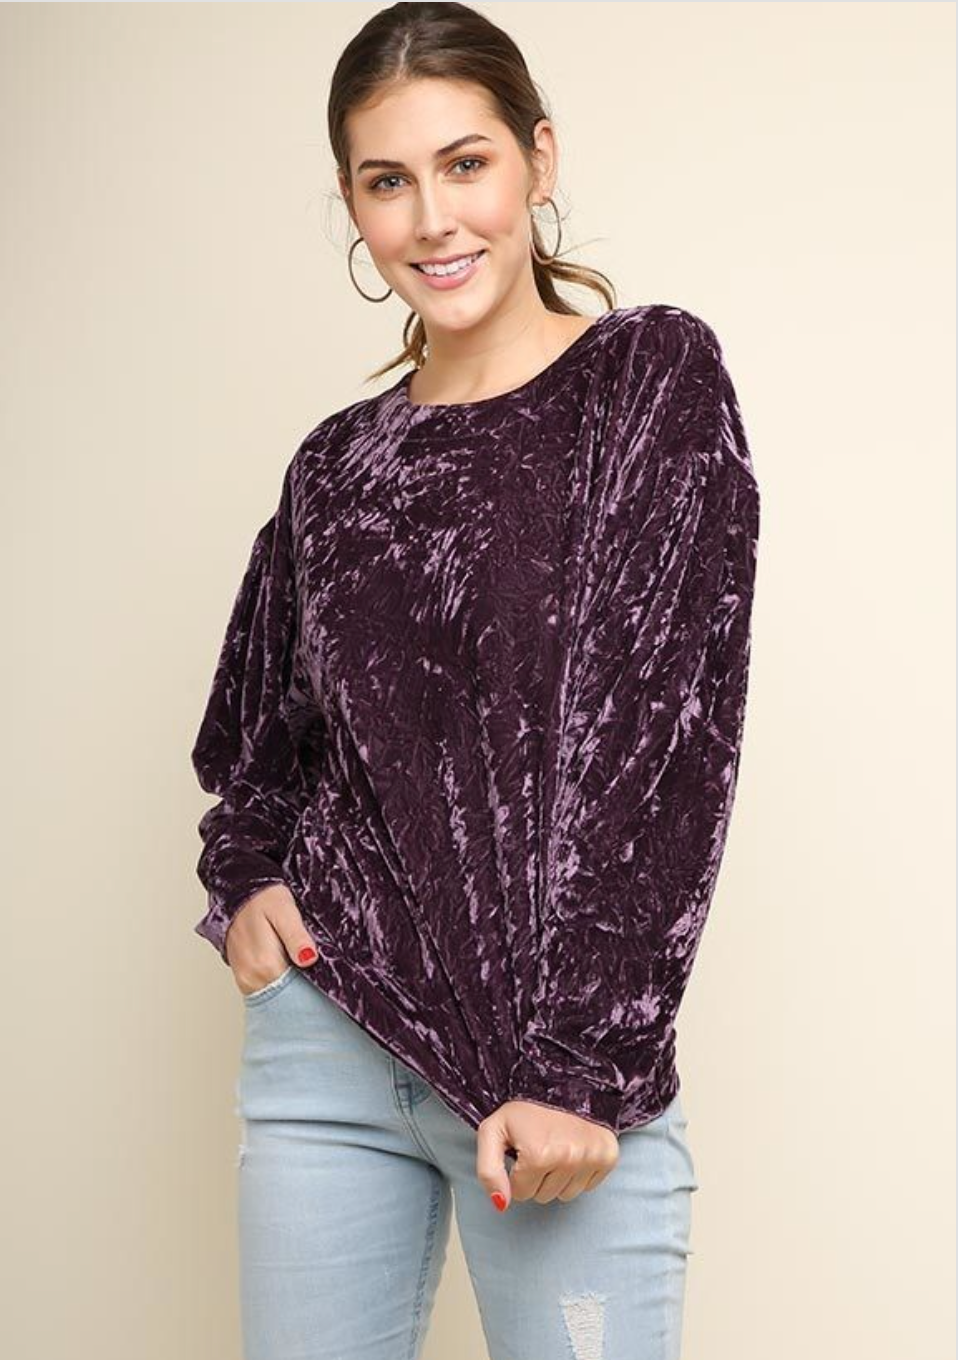 Violet Long Sleeve Crushed Velvet Round Neck Top Wild Bee Boutique